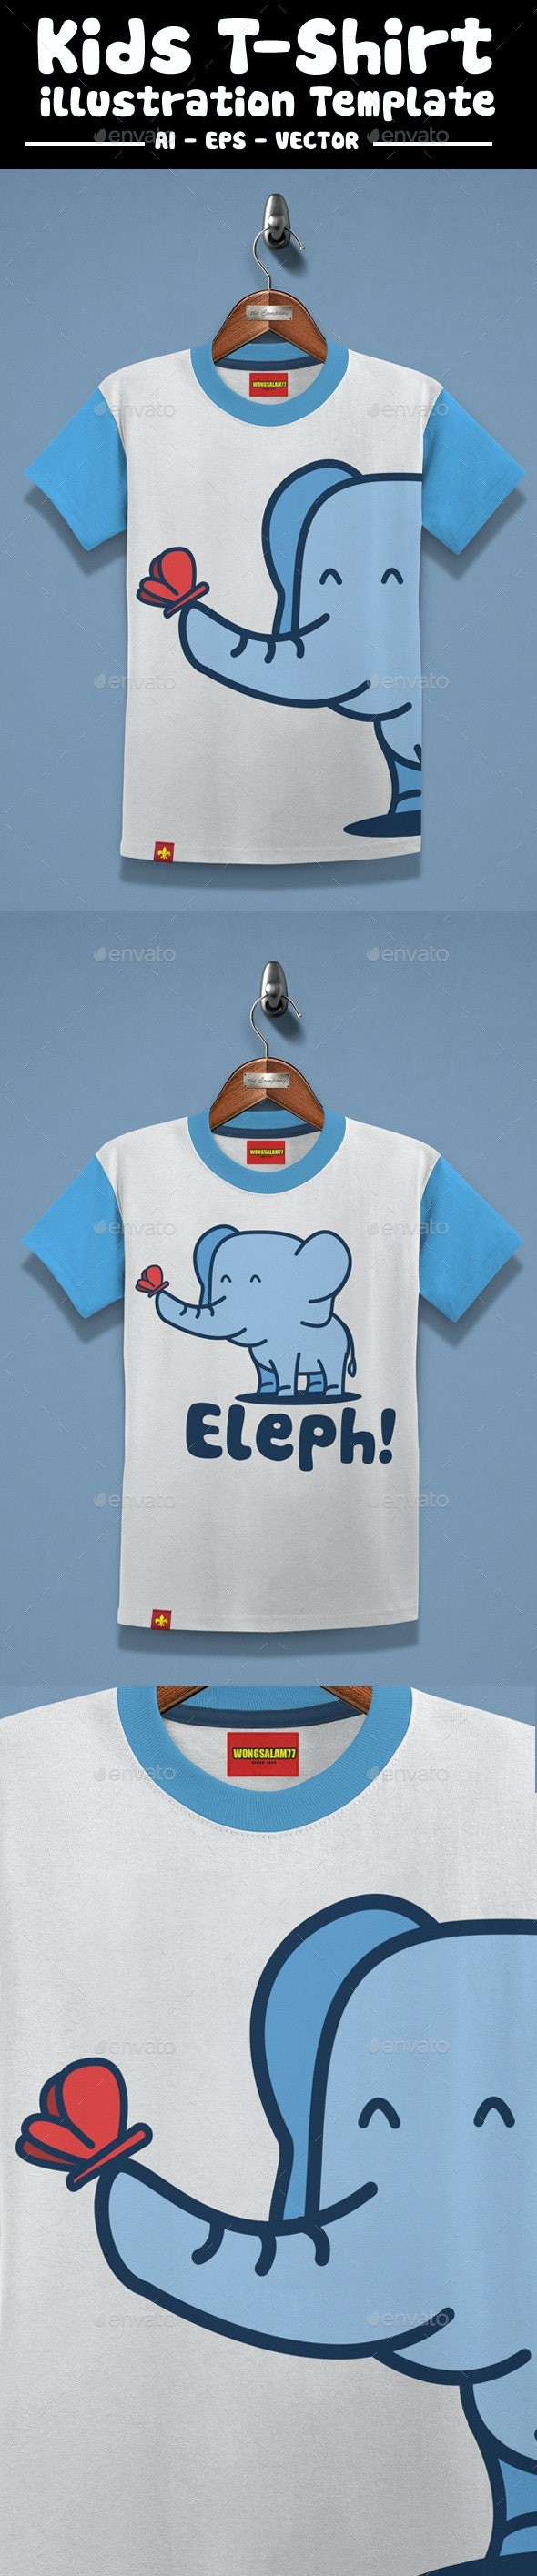 Elephant Kids T-Shirt Design